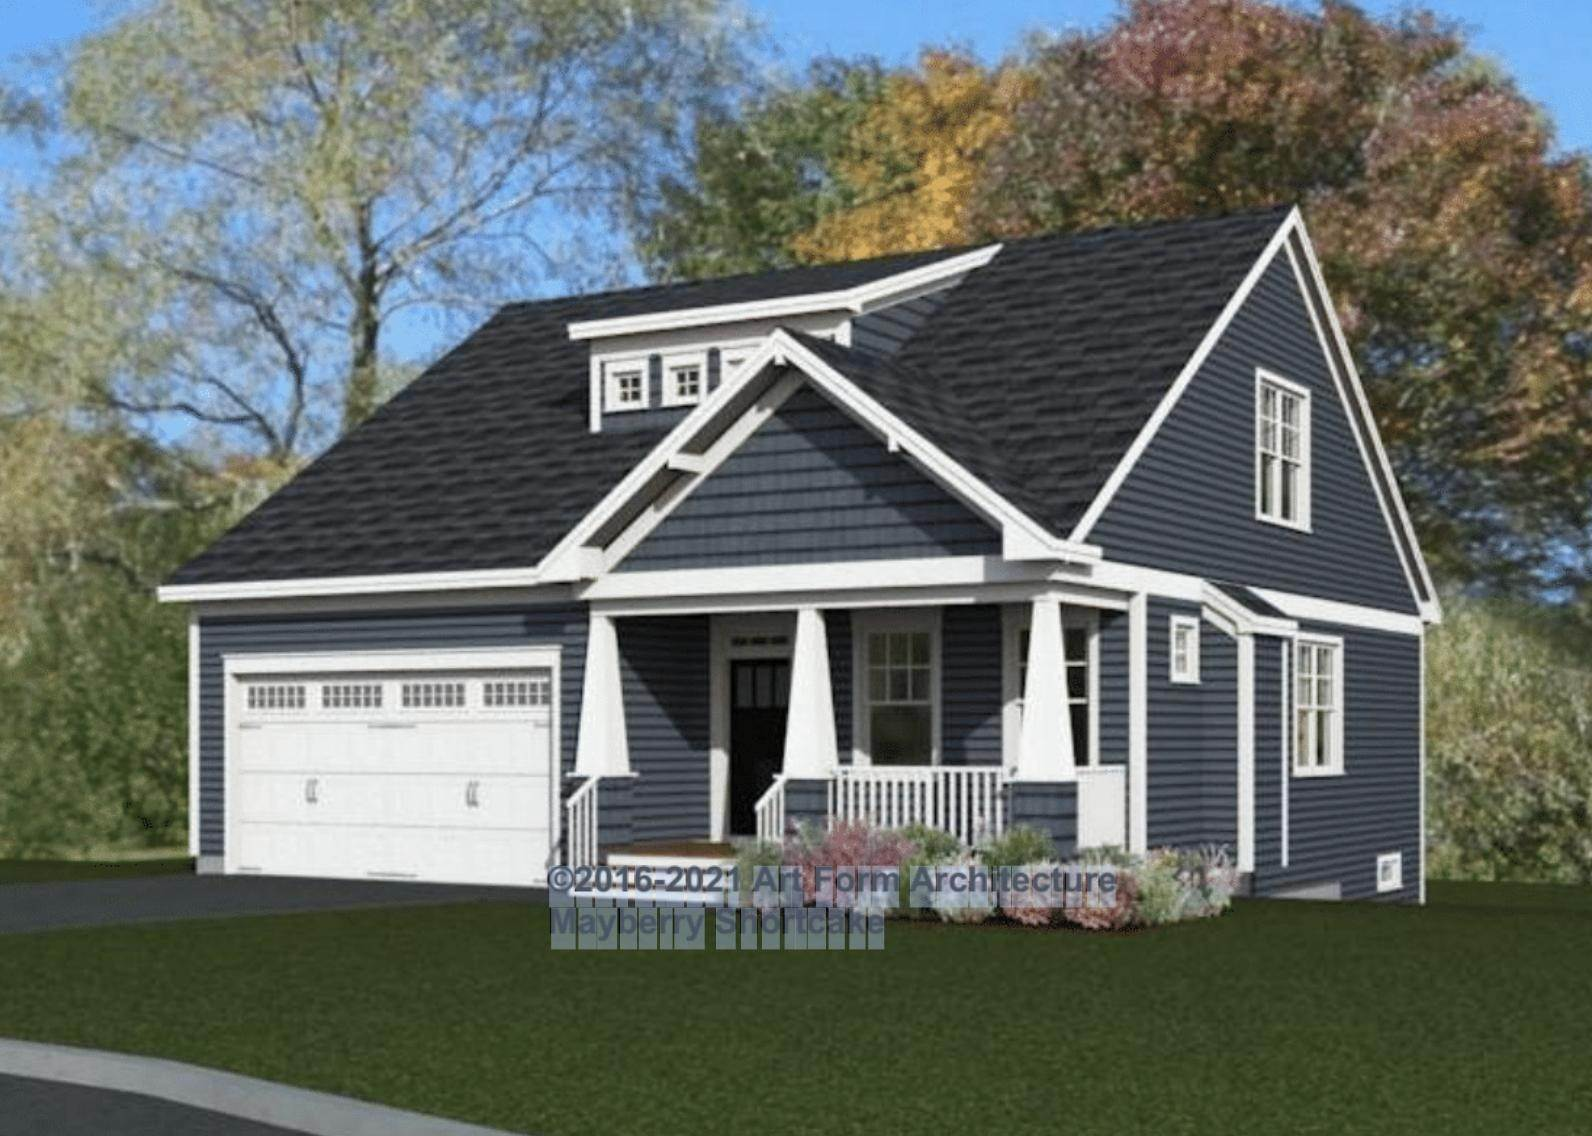 3. Single Family Homes for Sale at Portland, ME 04102